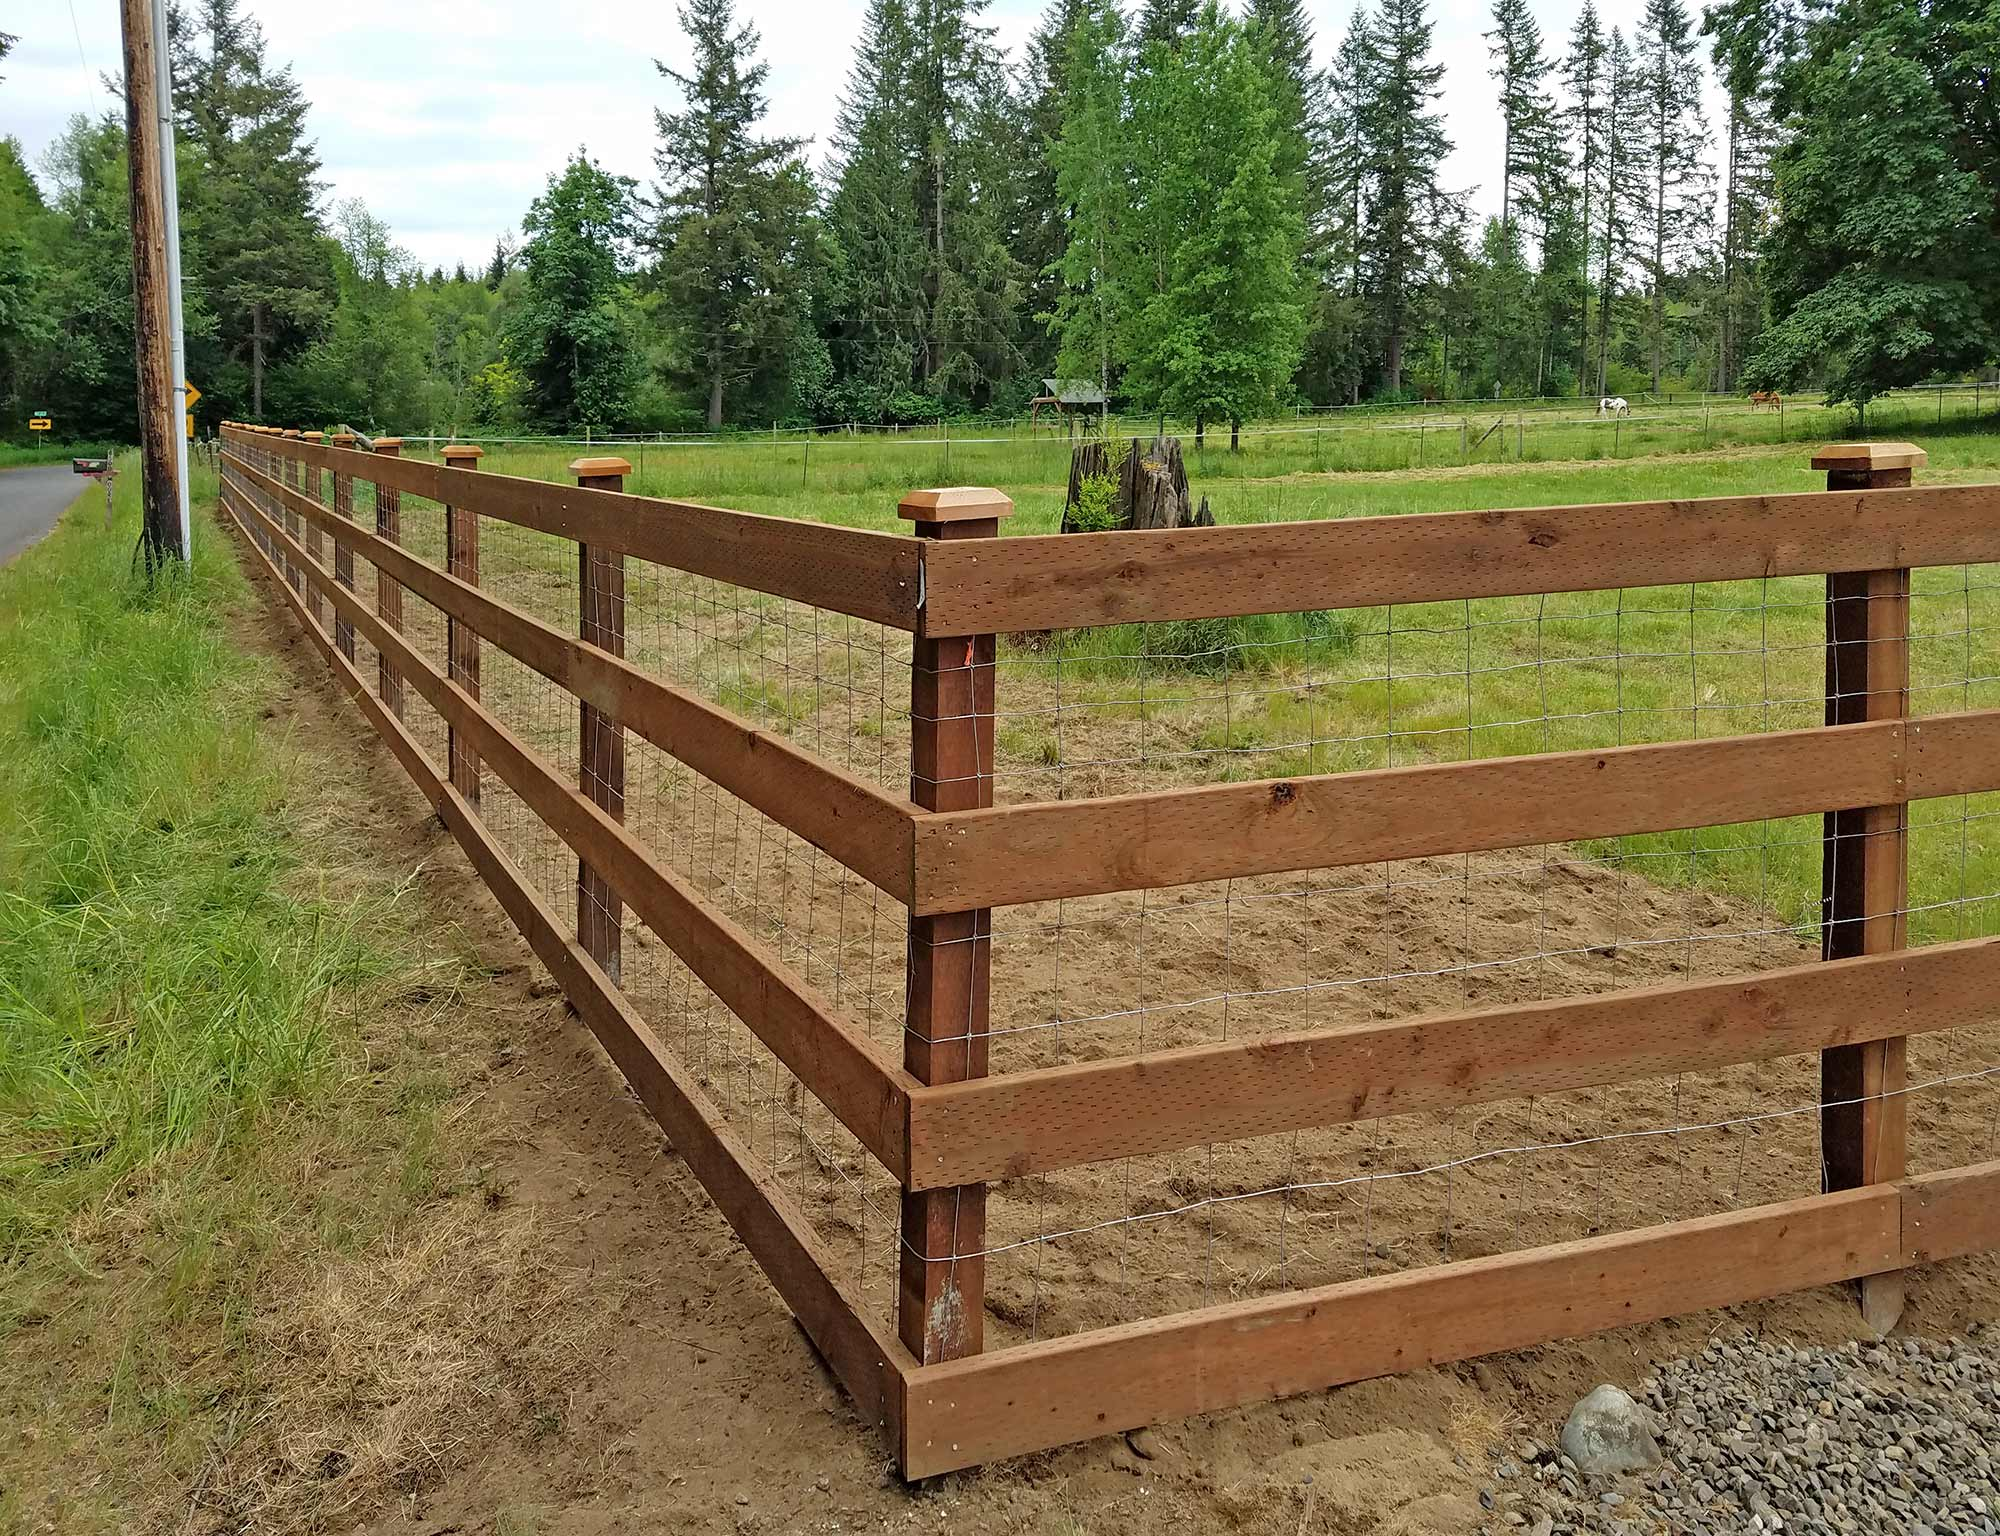 Farm fence built by AJB in Evergreen Valley